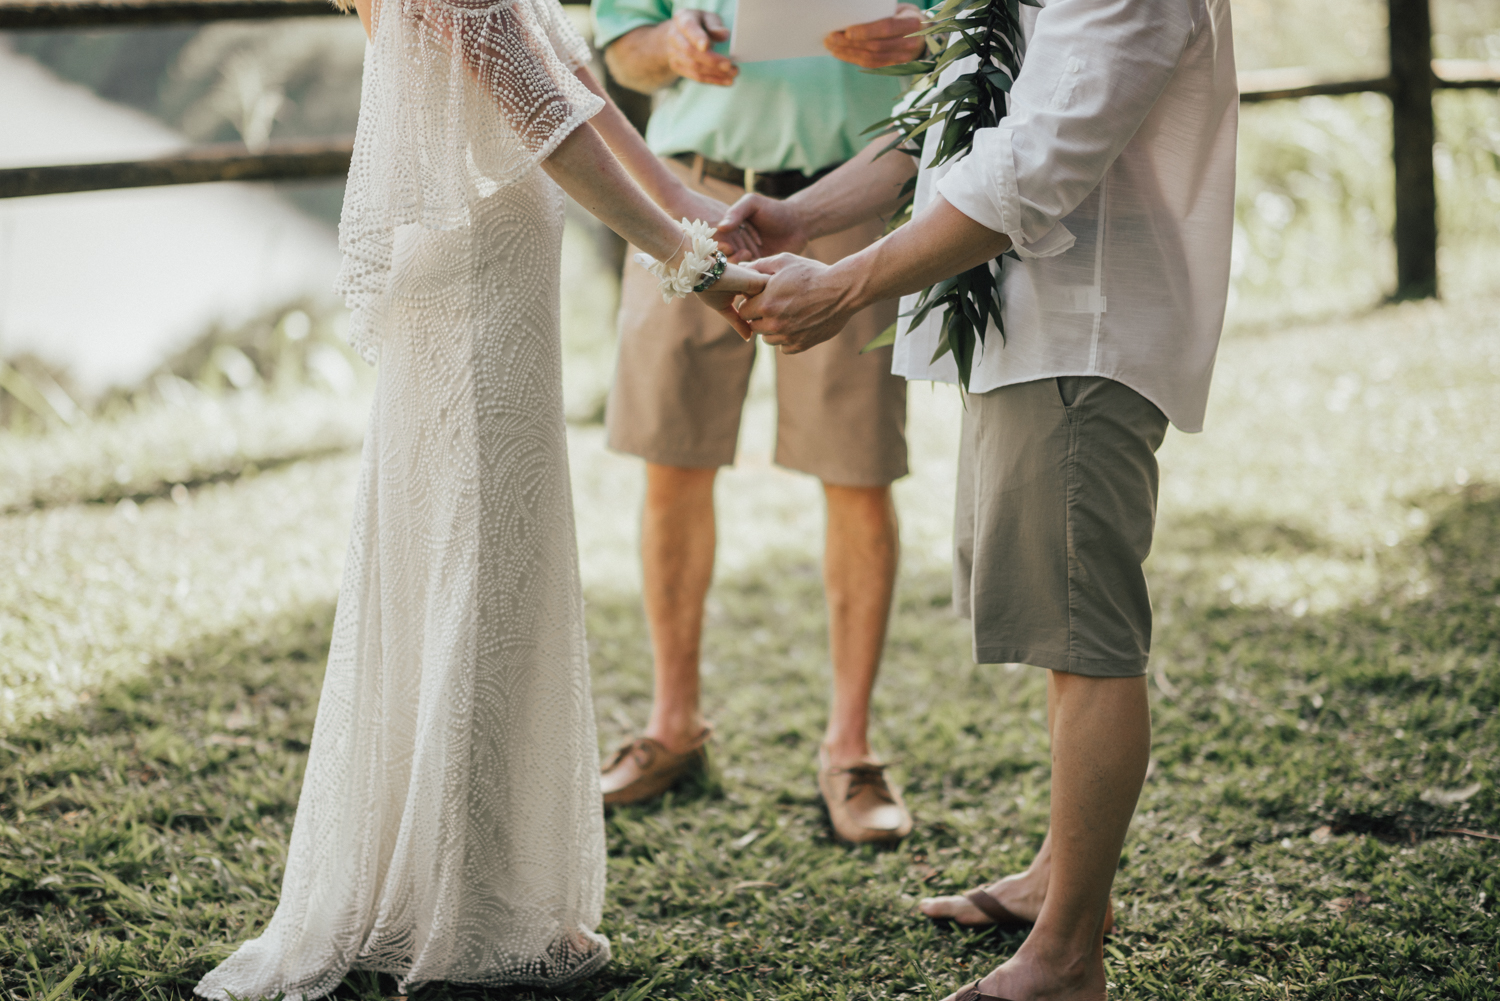 Kauai-elopement-photographer-28.jpg